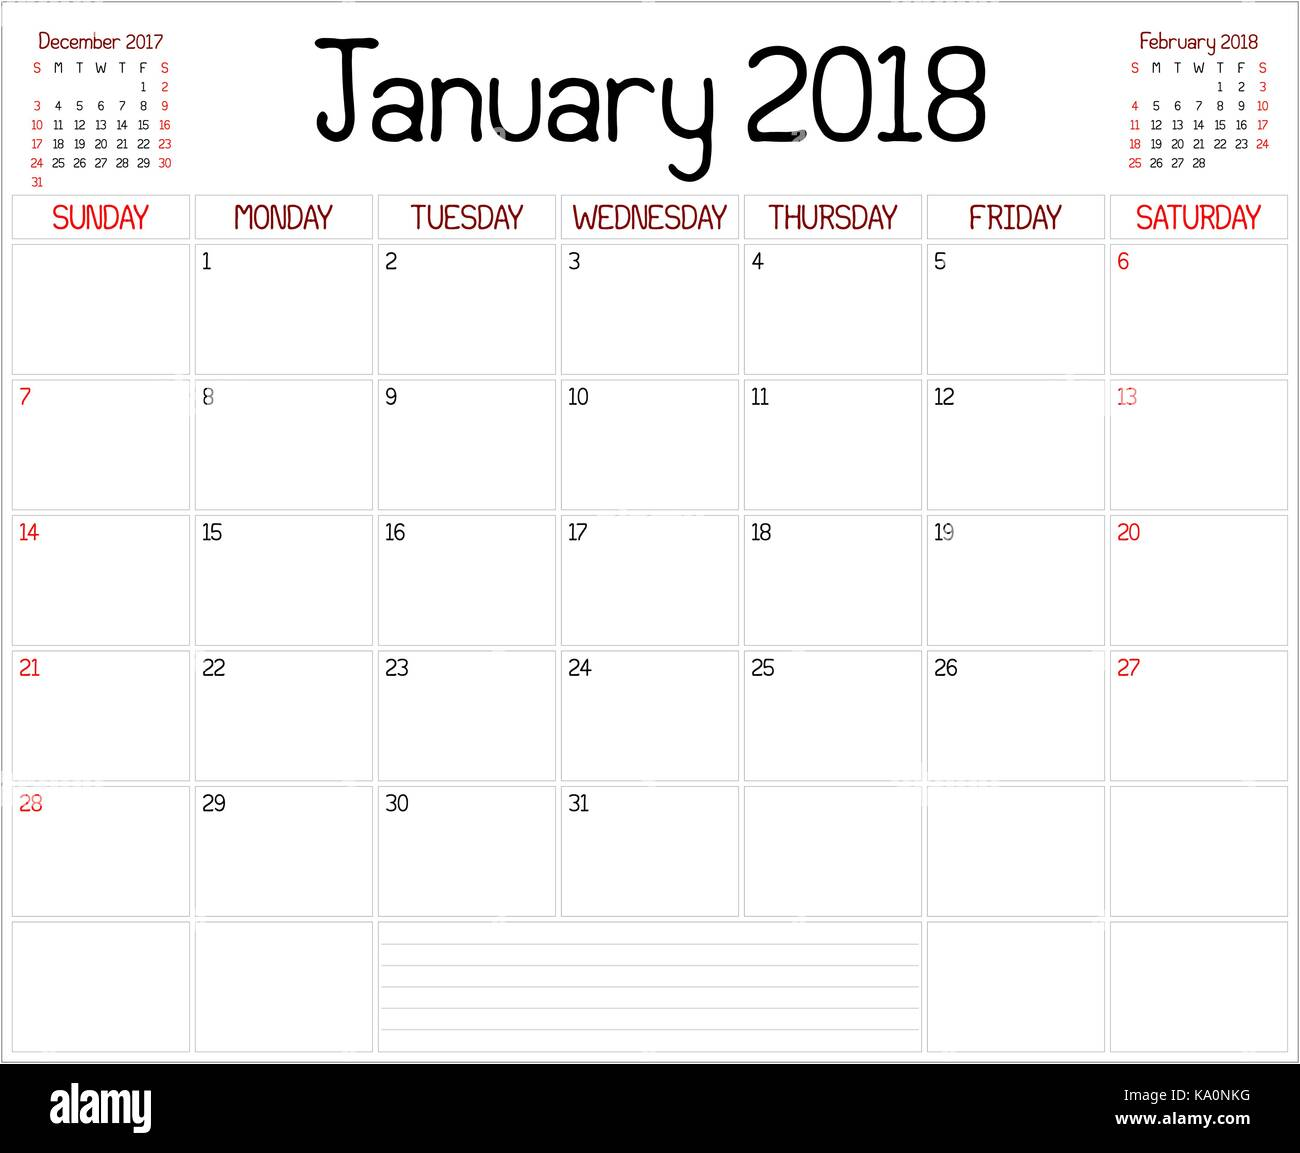 Year 2018 January Planner - A monthly planner calendar for January ...